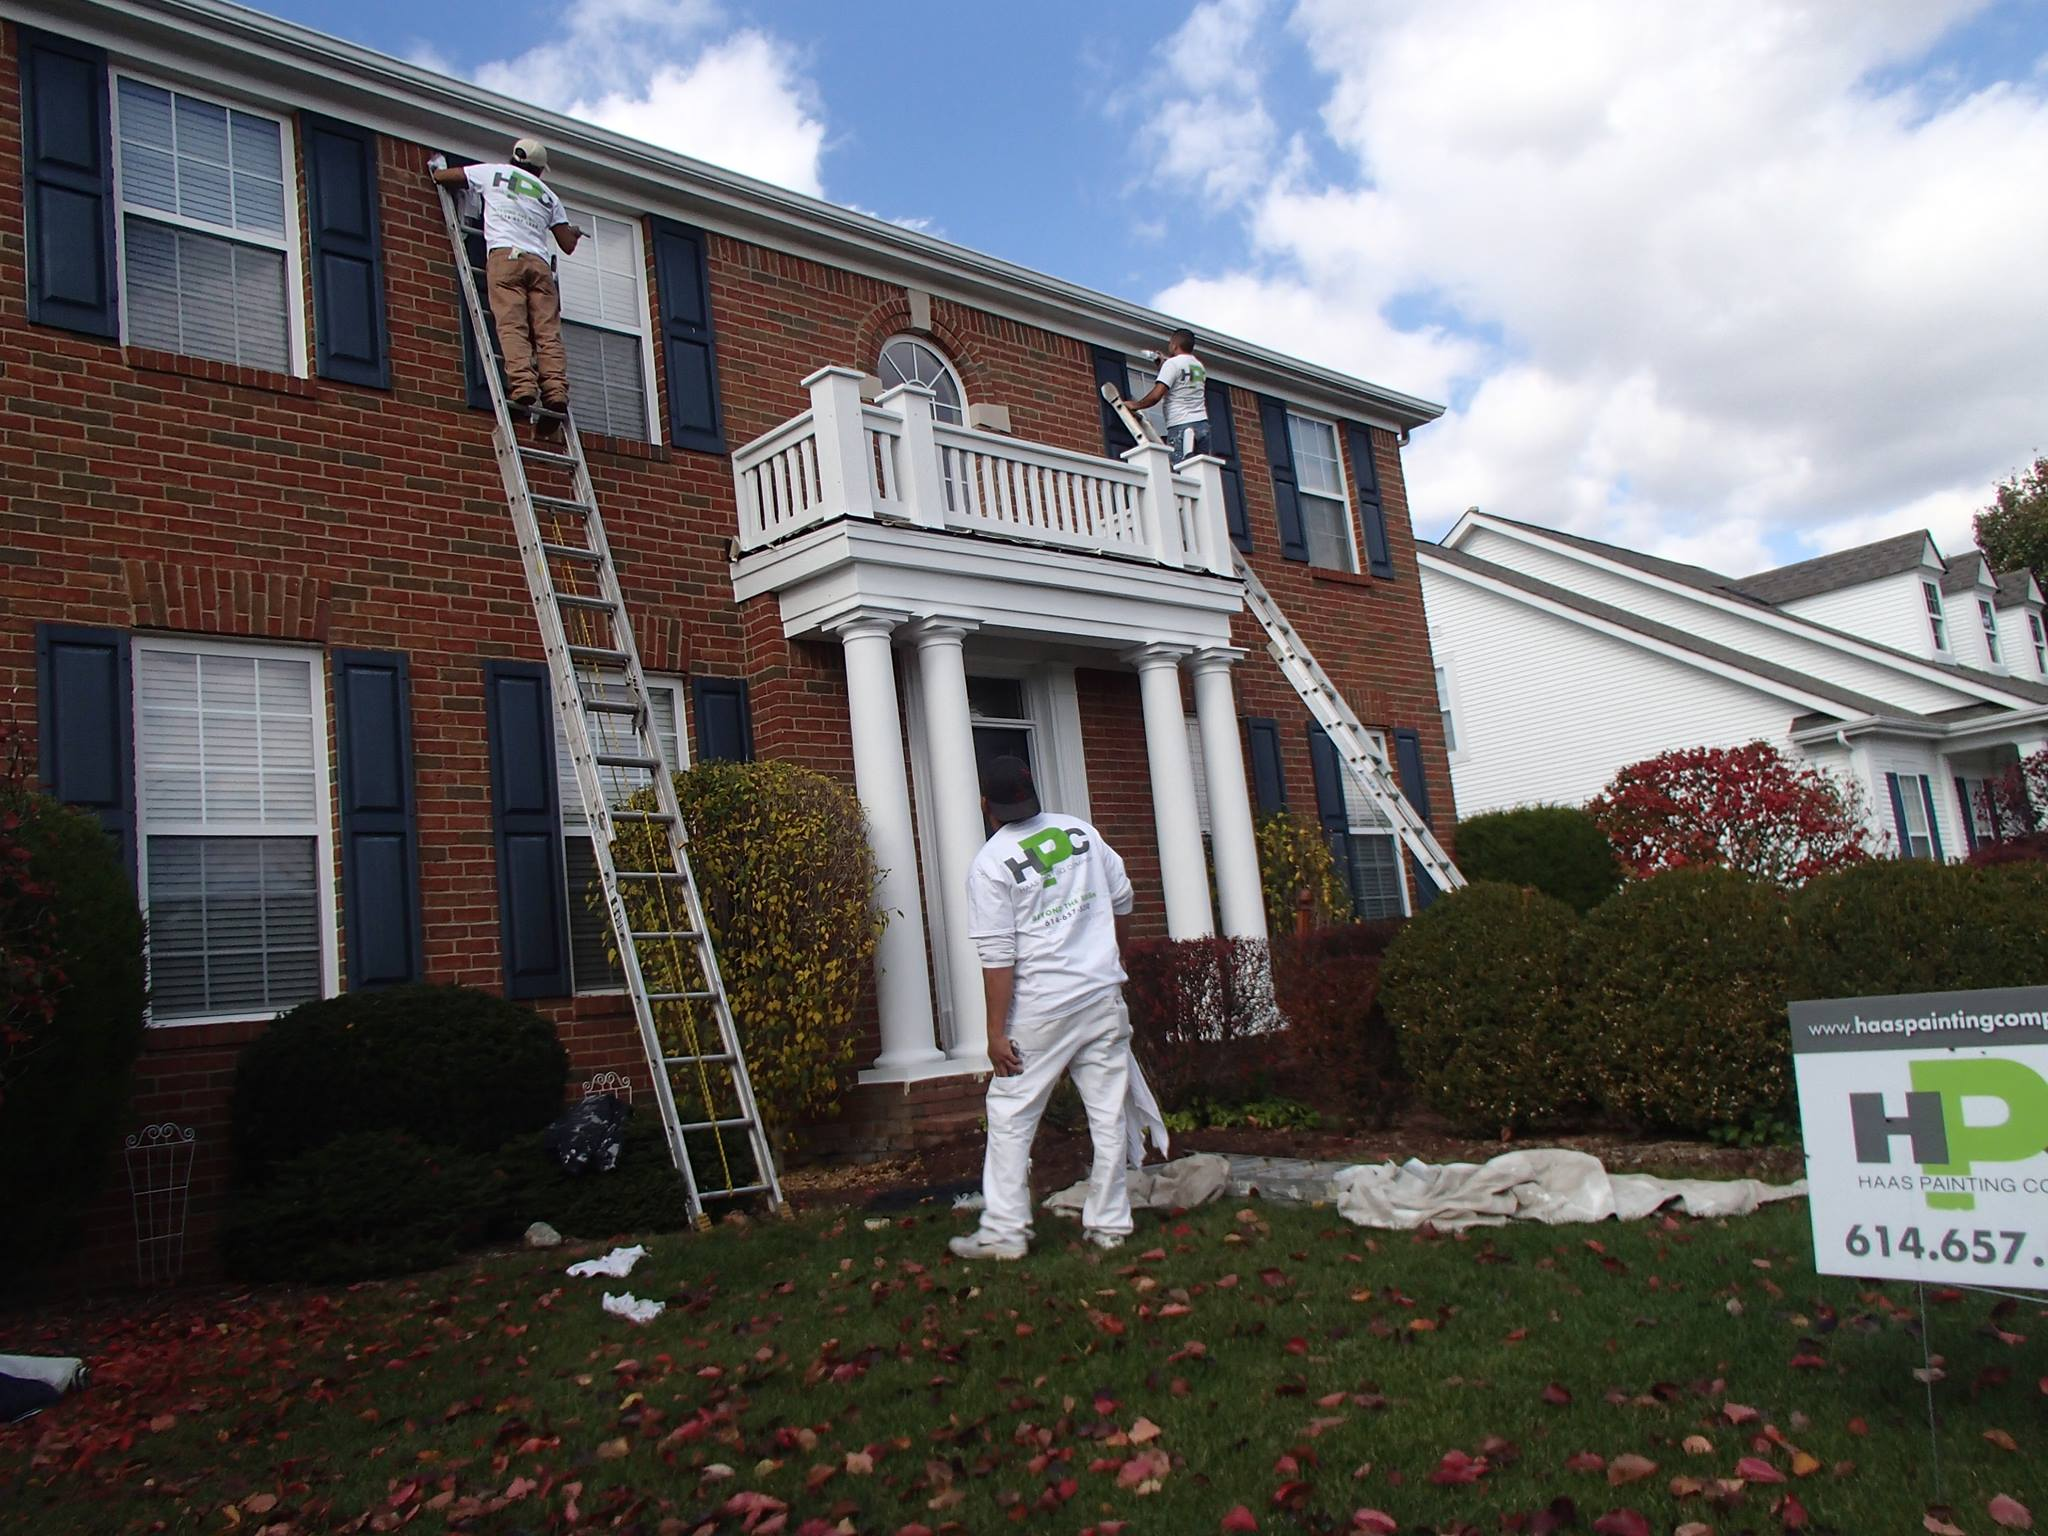 Ohio's Top Rated Local® Painting Contractors Award Winner: Haas Painting Company, LLC